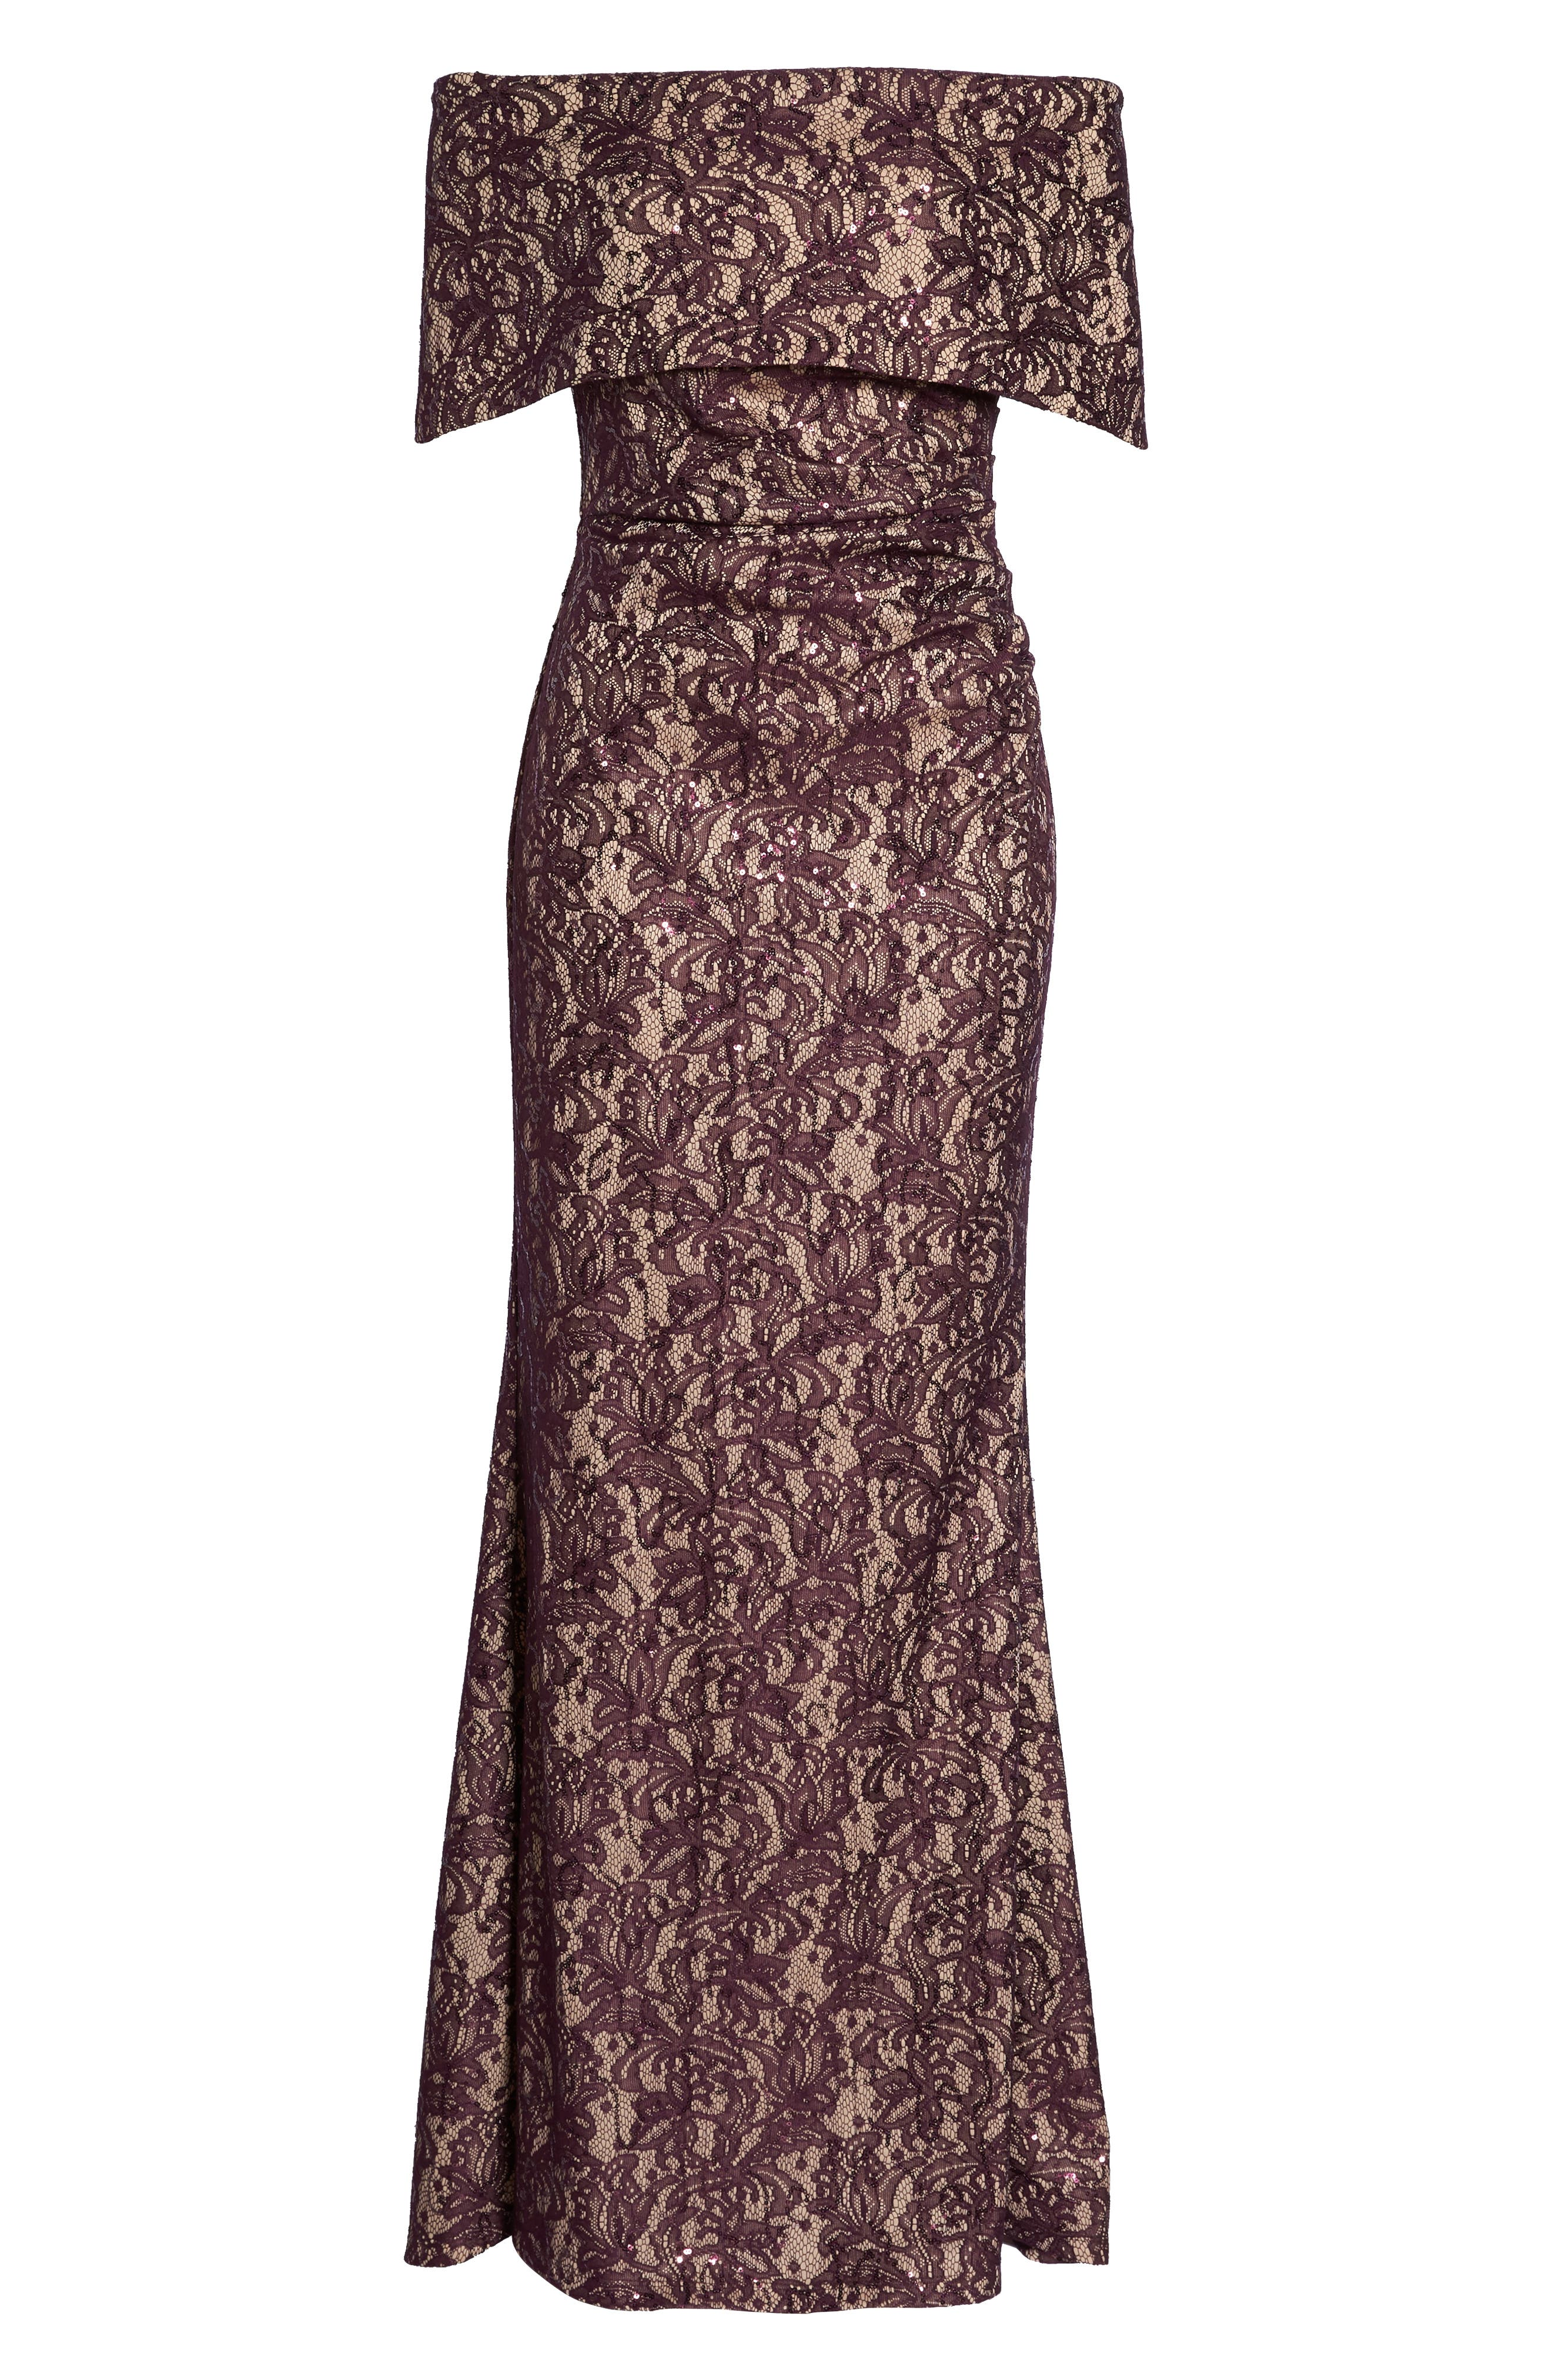 VINCE CAMUTO, Sequin Off the Shoulder Gown, Alternate thumbnail 7, color, WINE